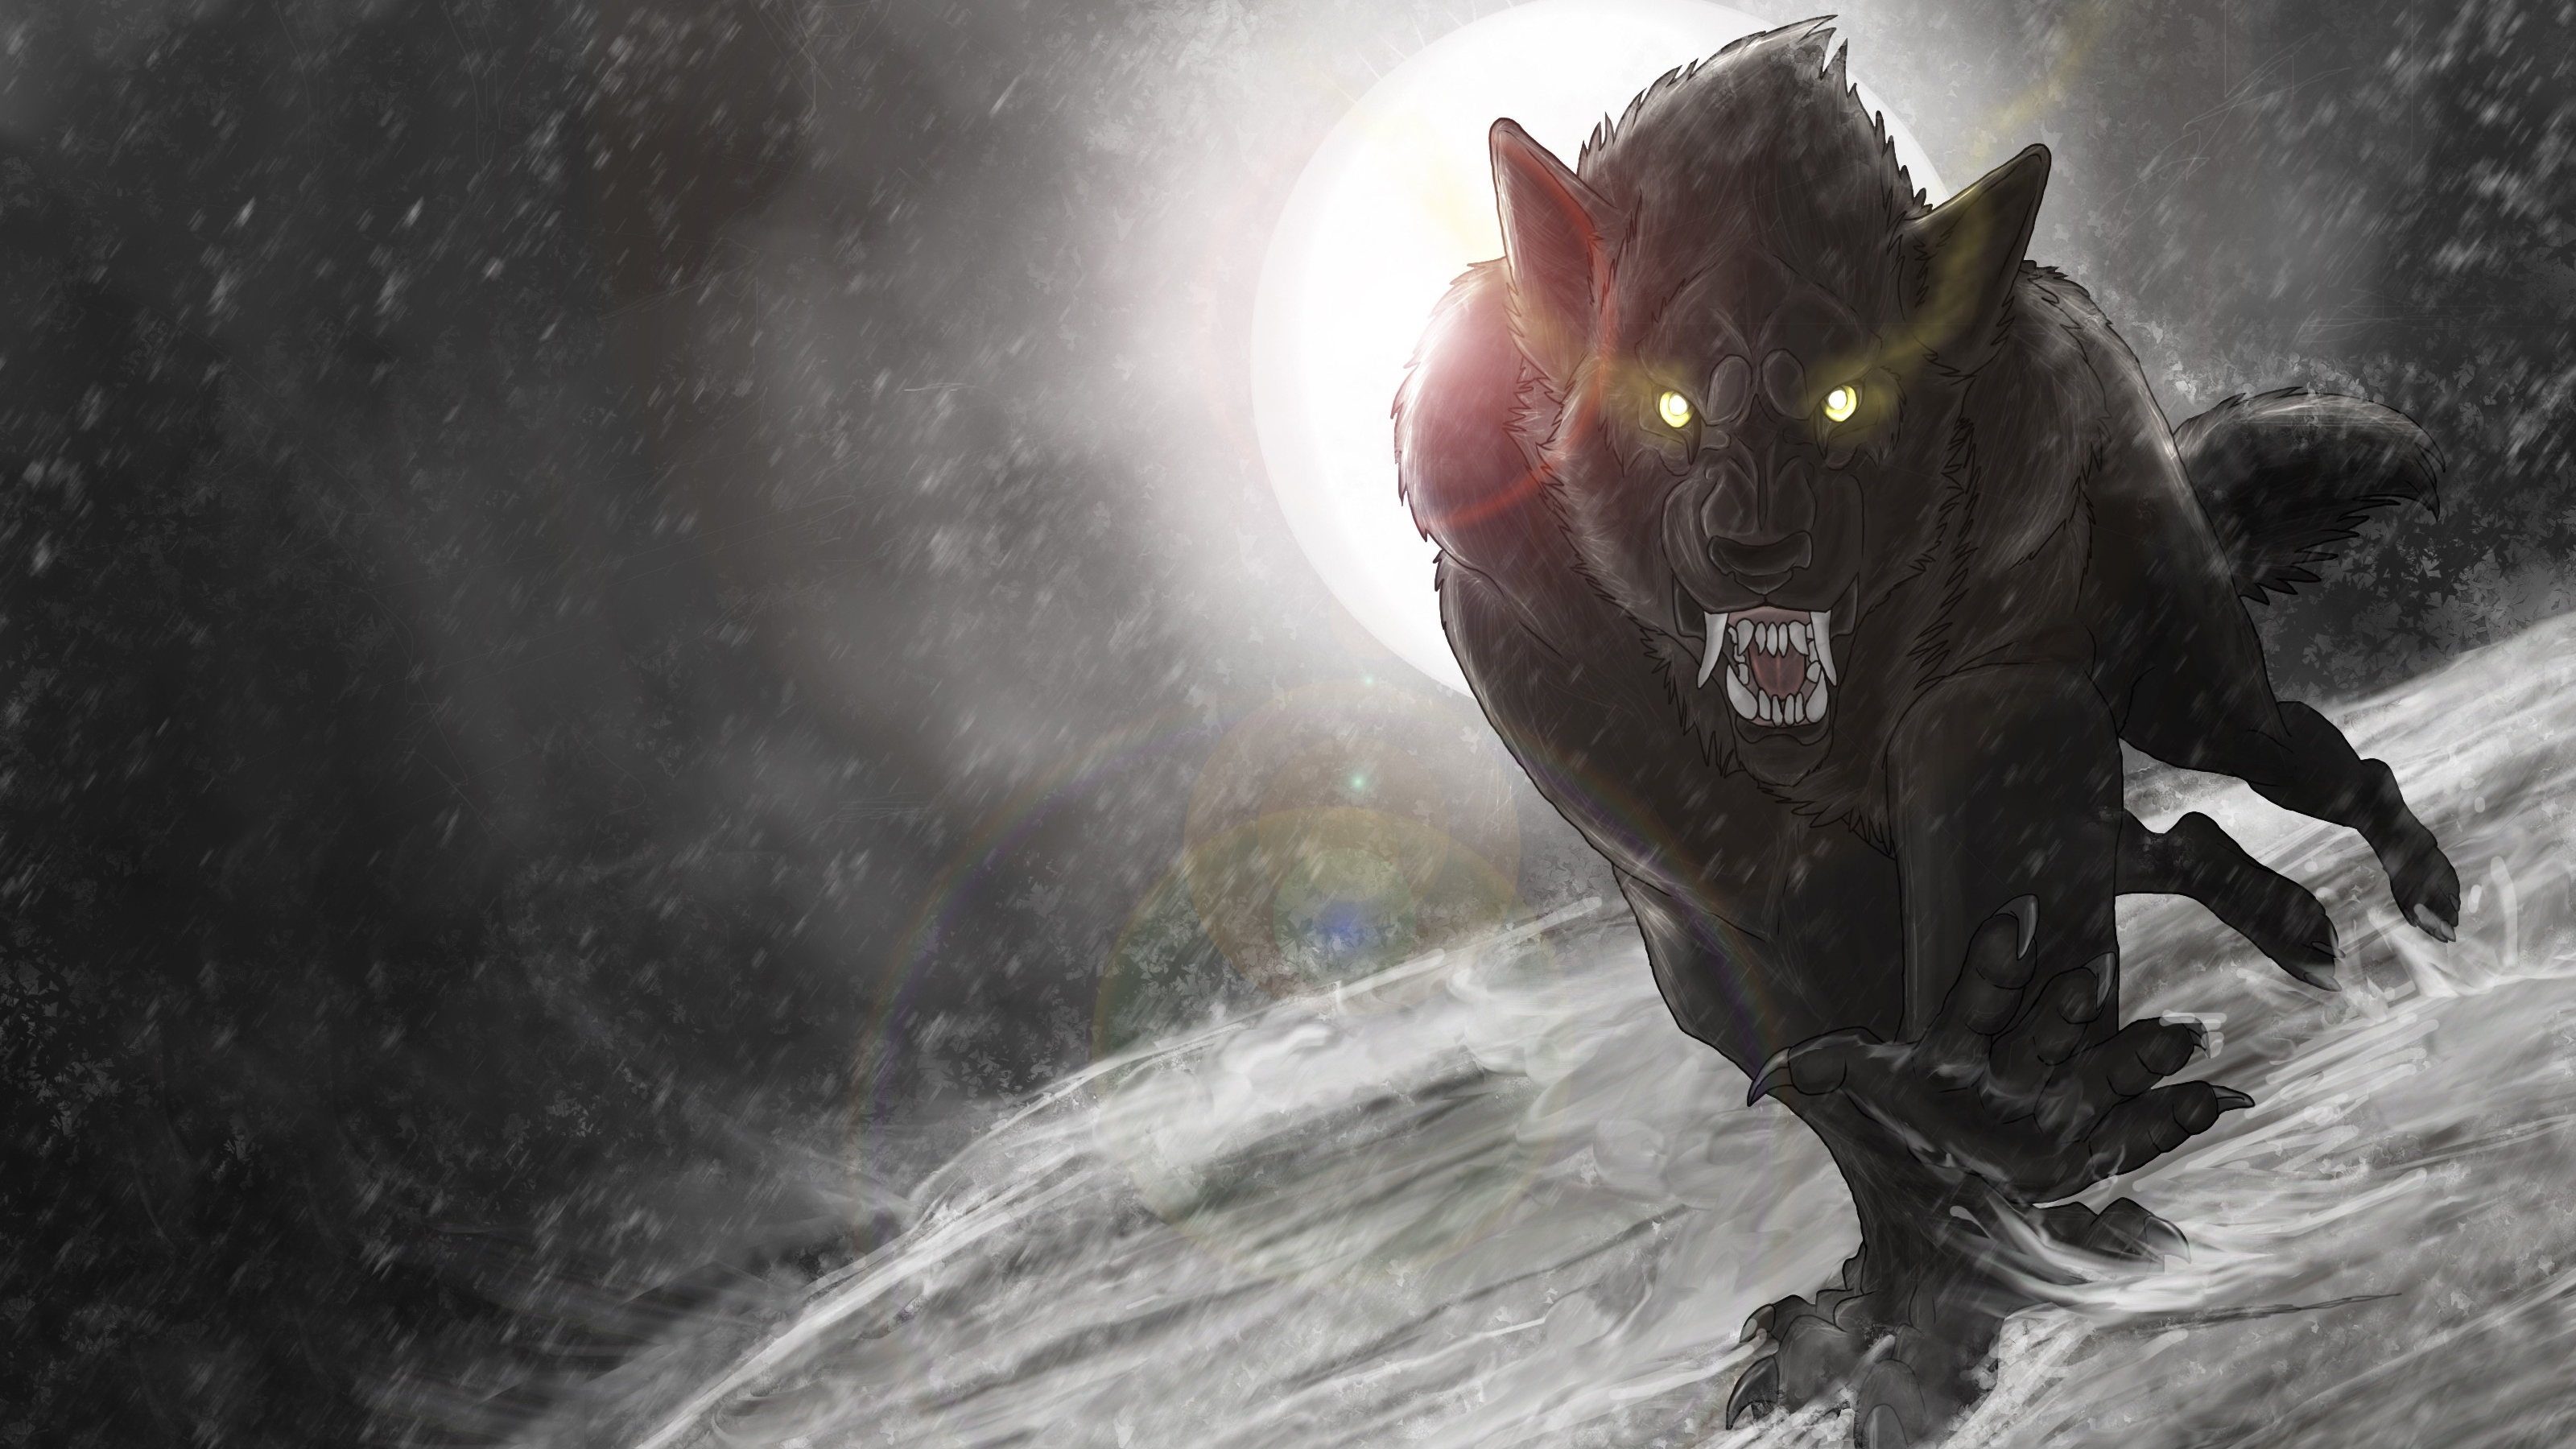 werewolf computer wallpapers desktop backgrounds